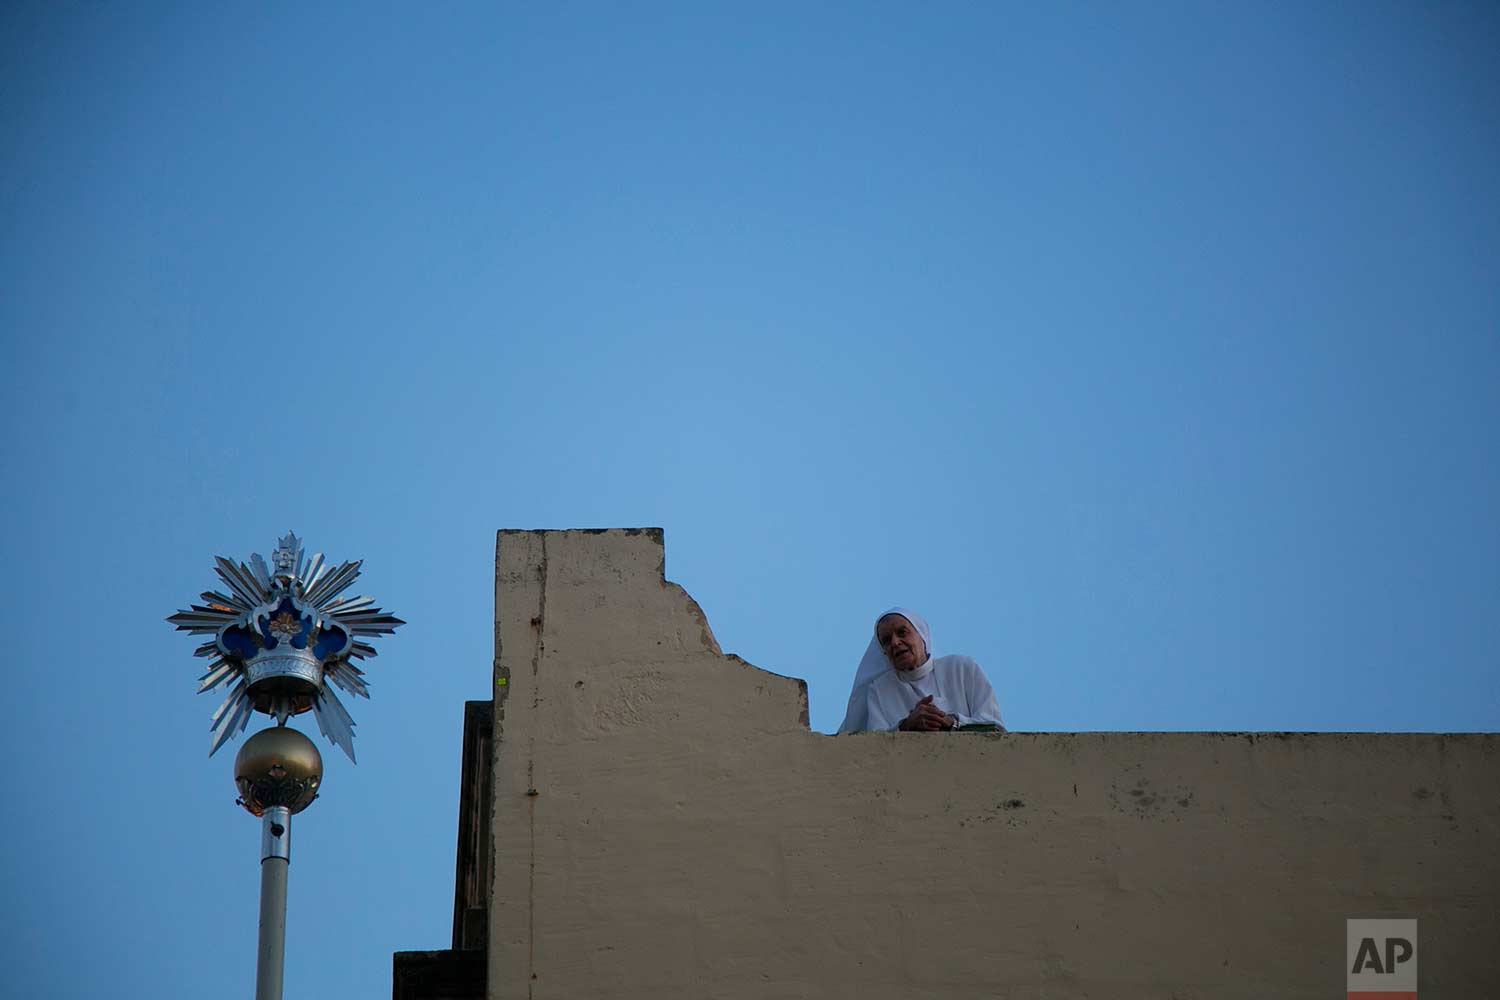 In this photo taken on Wednesday, Aug. 15, 2018, a nun watches the statue of the Virgin Mary being carried through the streets of Rabat on the island of Gozo in the Maltese archipelago, during the feast day of the Assumption of Mary. (AP Photo/Niranjan Shrestha)